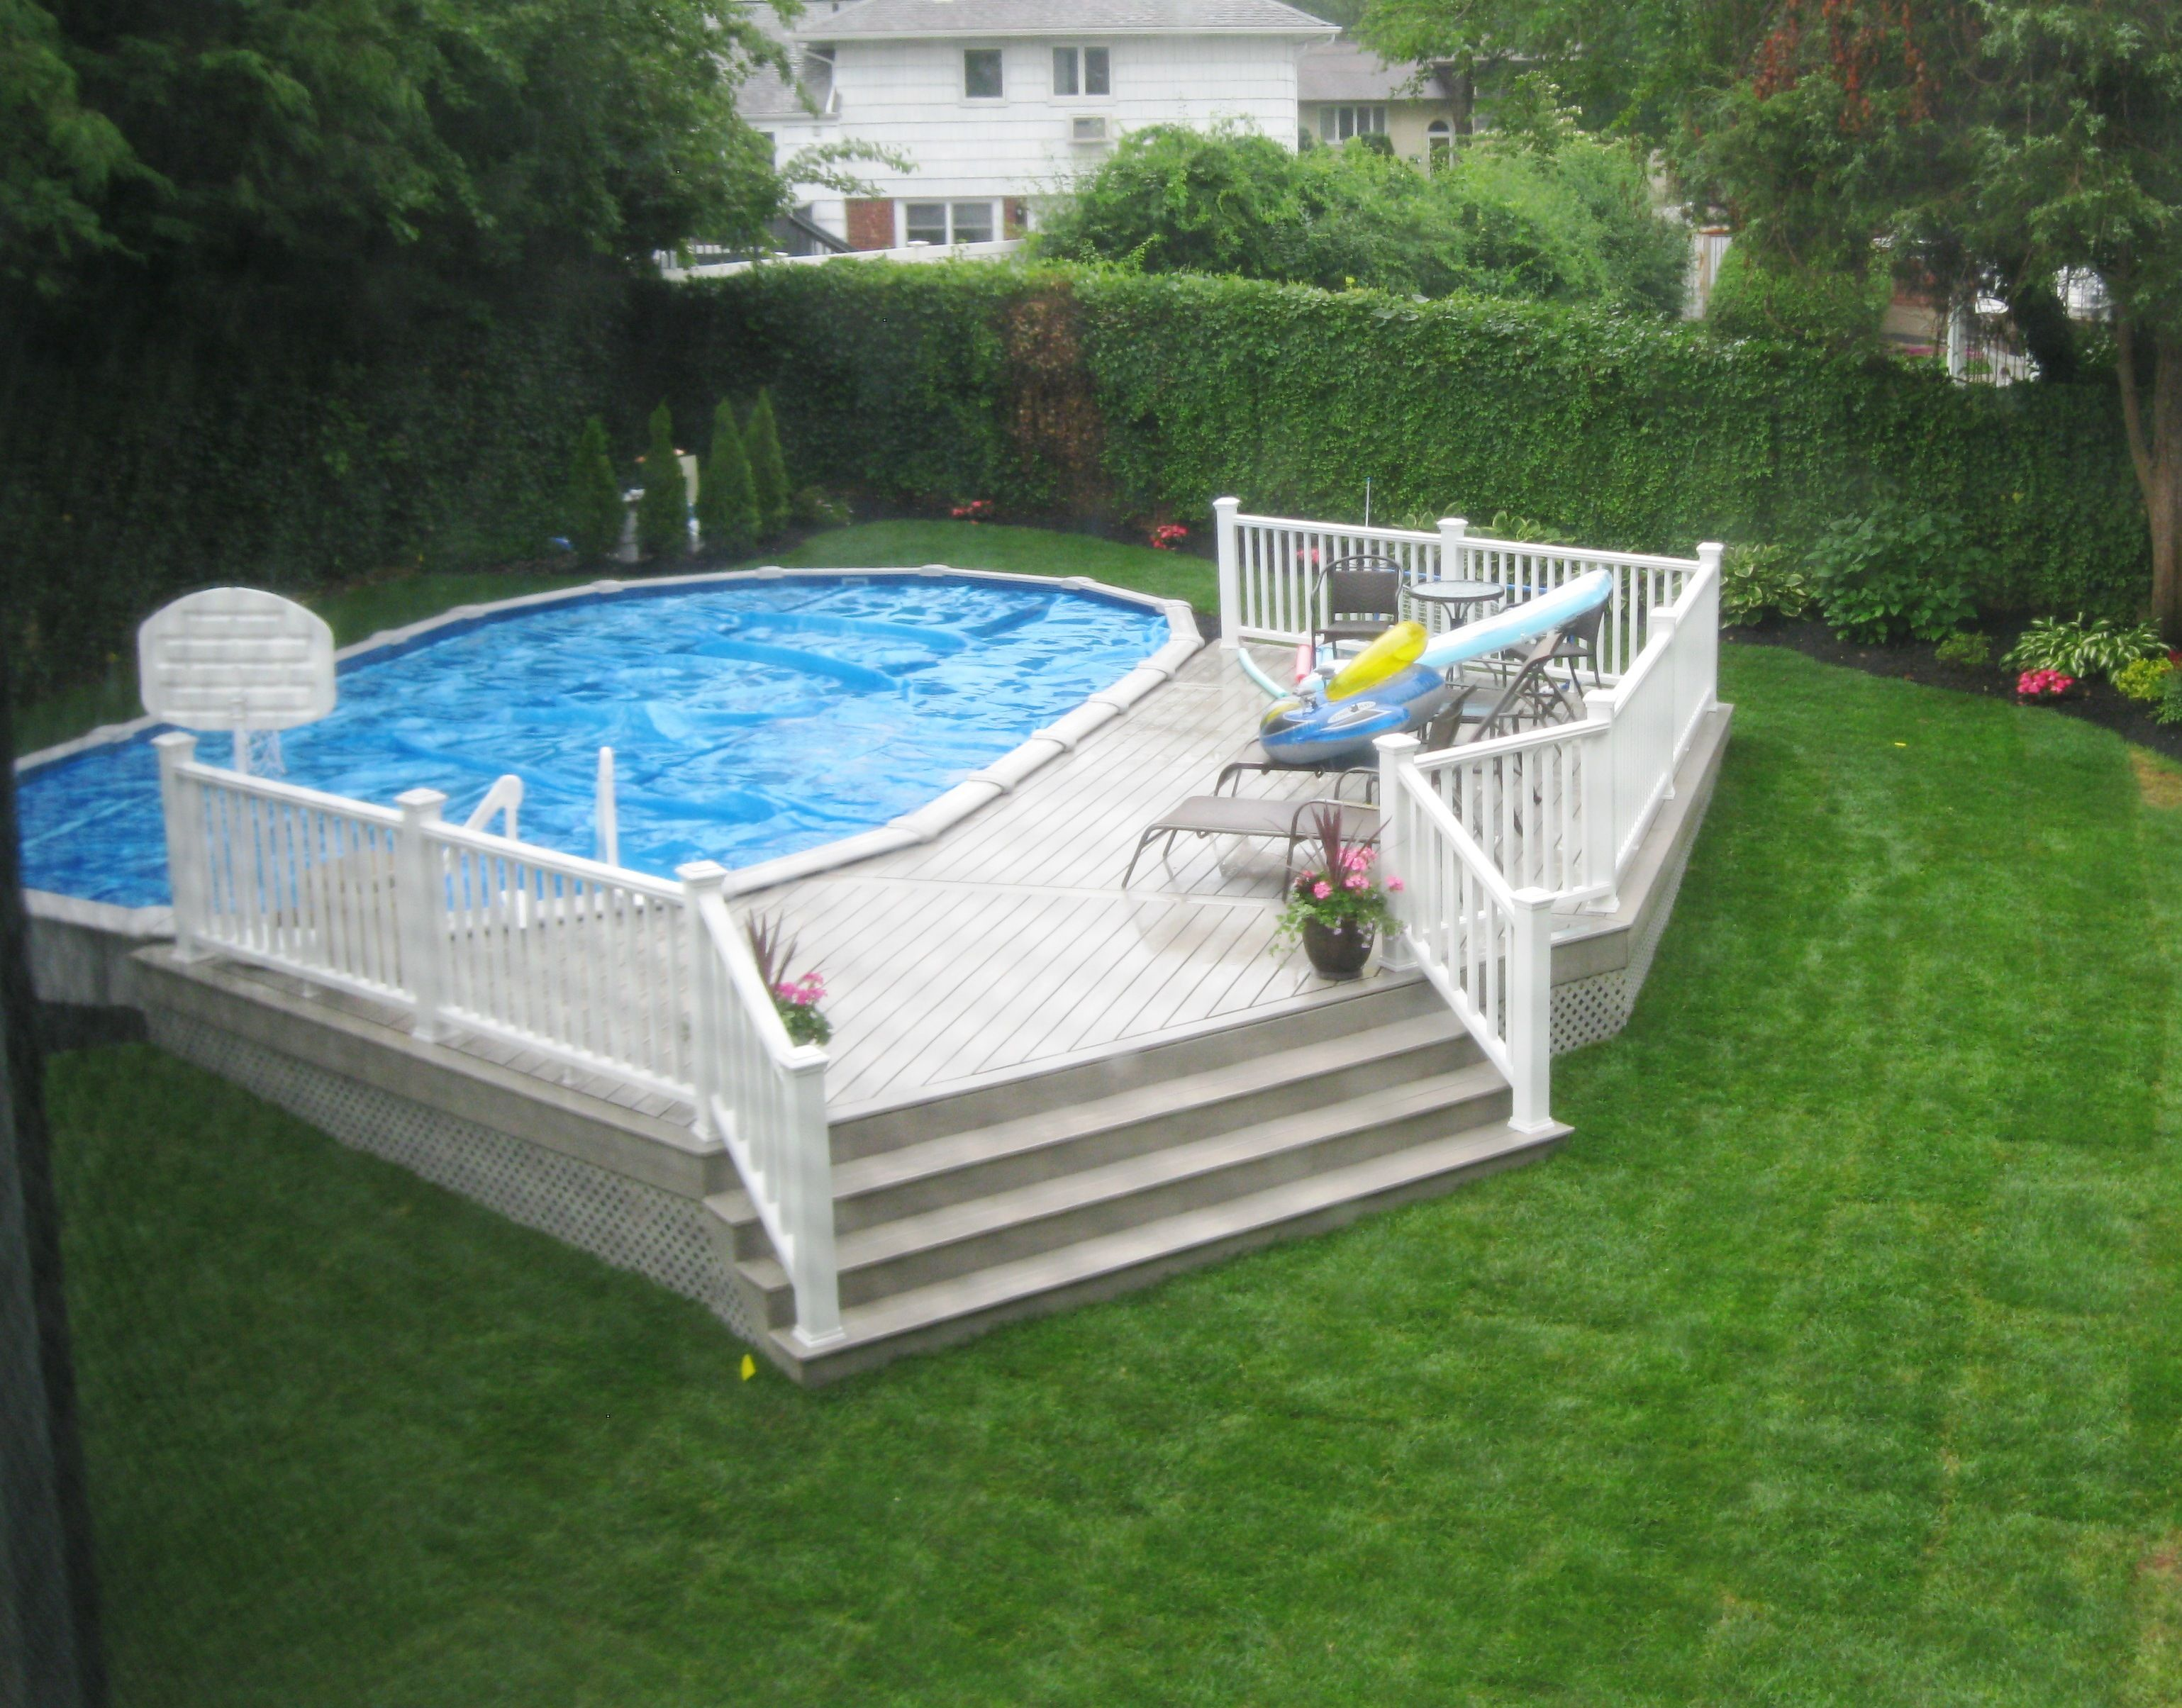 18x33 semi inground pool with deck - Inground Pool Patio Designs